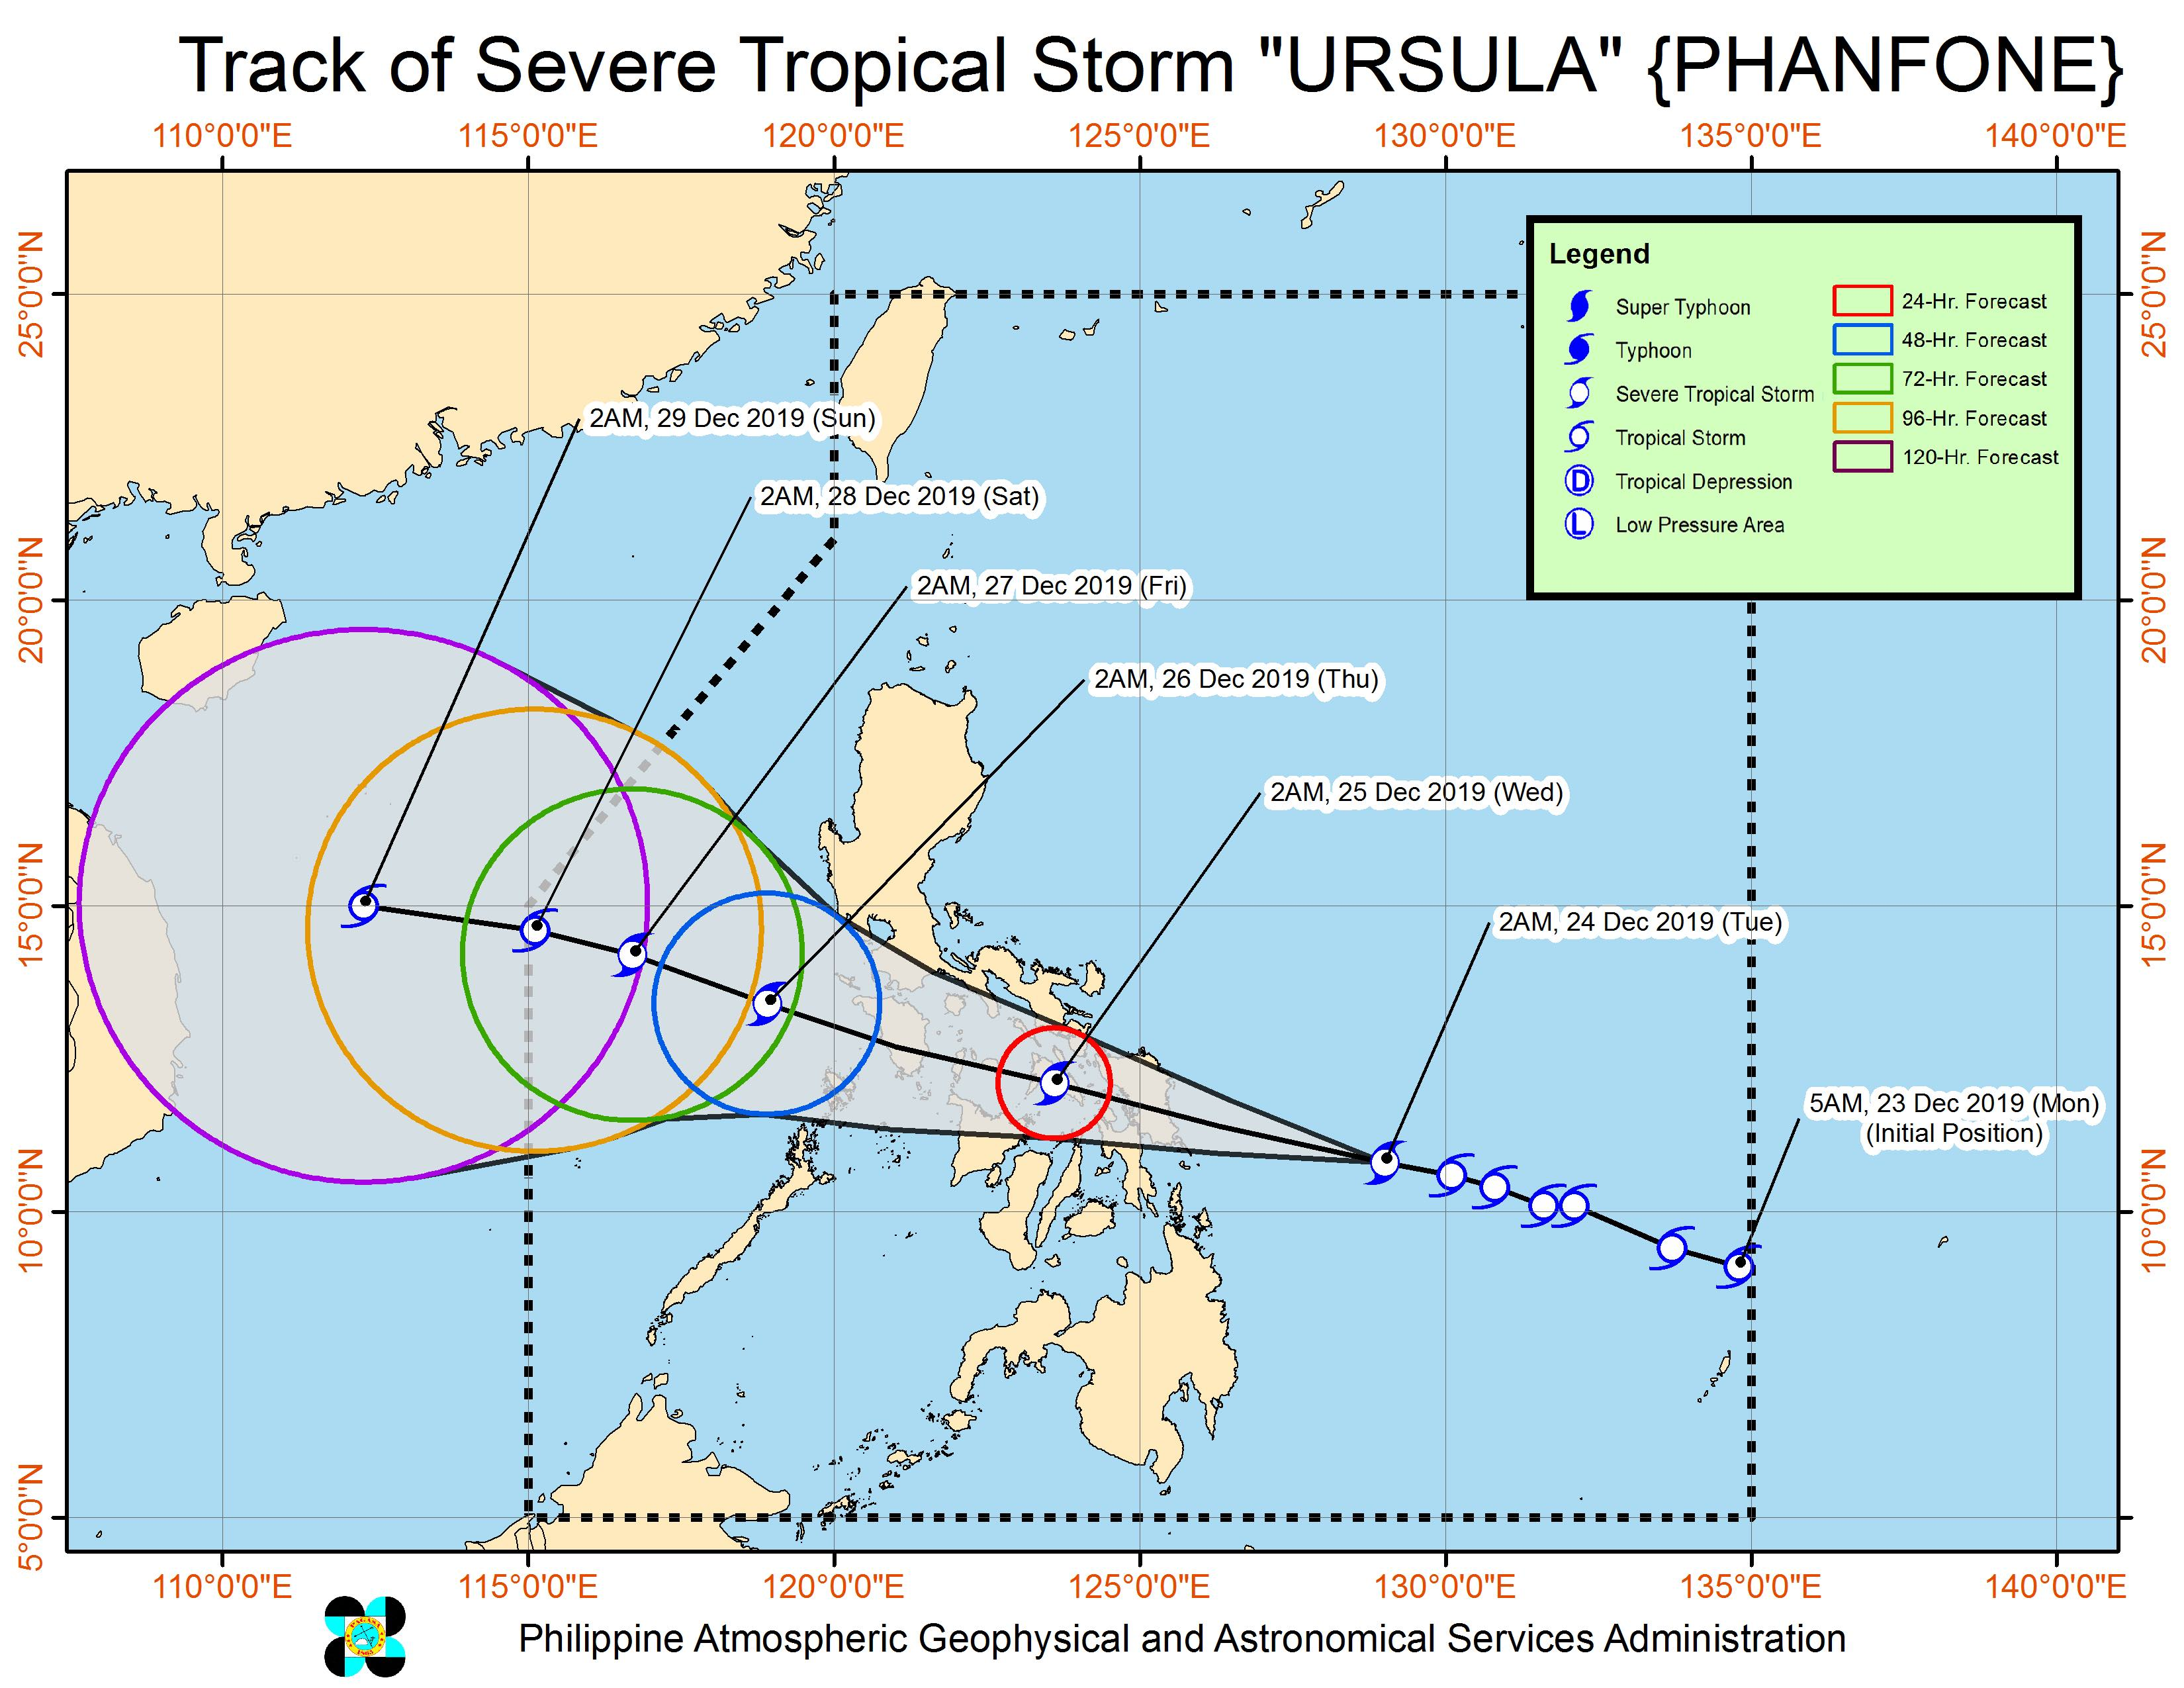 Forecast track of Severe Tropical Storm Ursula (Phanfone) as of December 24, 2019, 5 am. Image from PAGASA